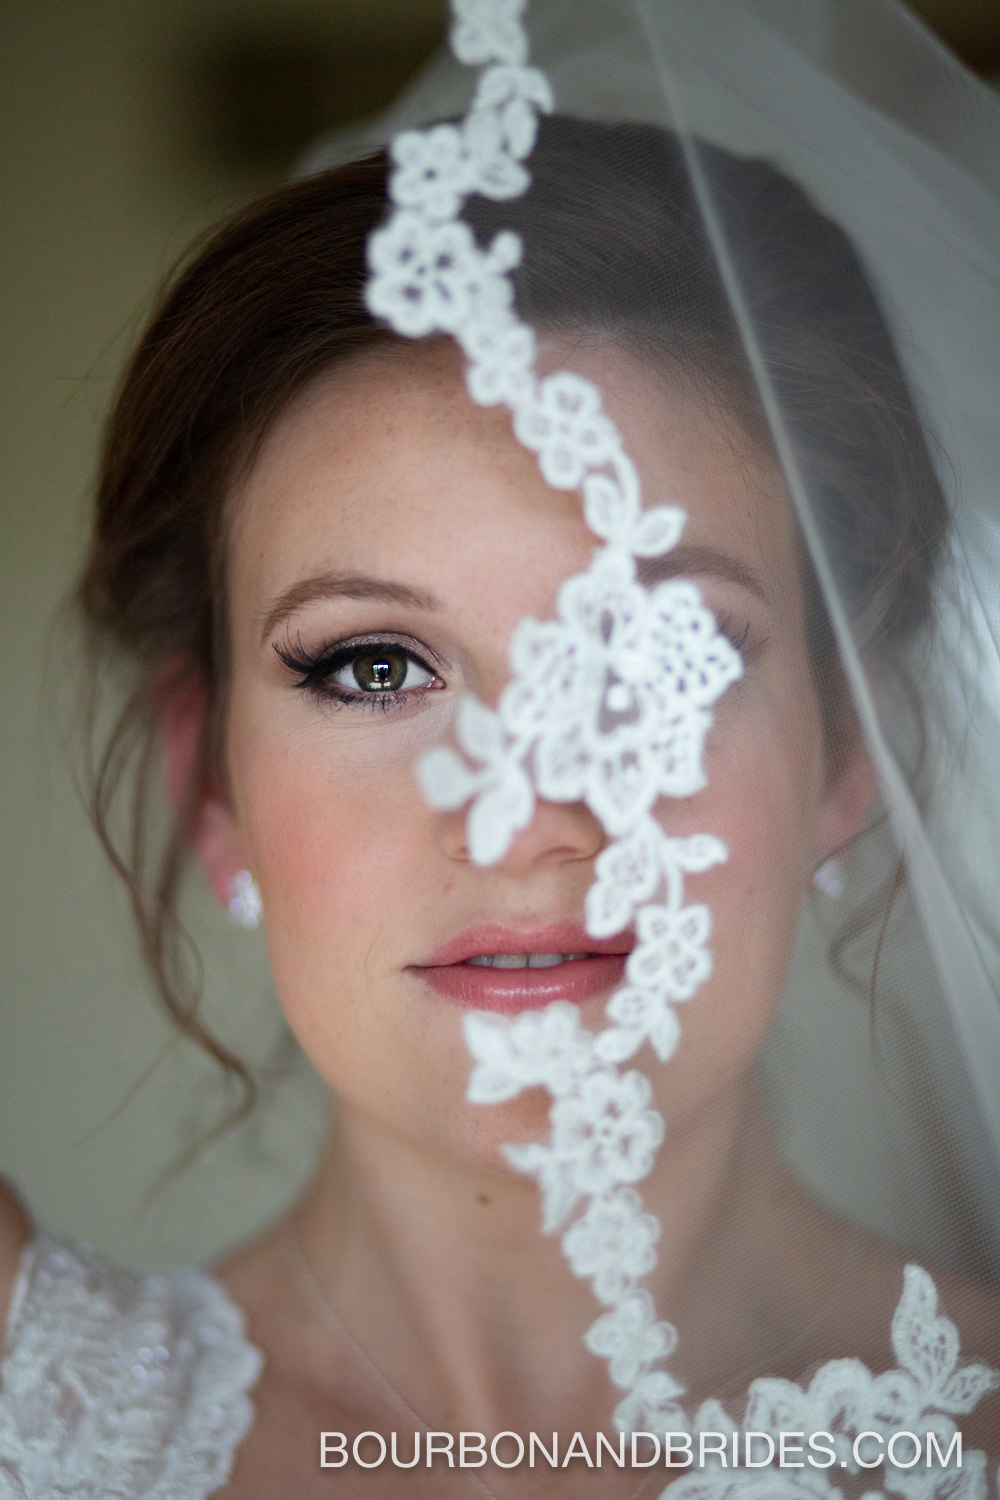 Cincinatti-wedding-bride-photographer-kentucky.jpg